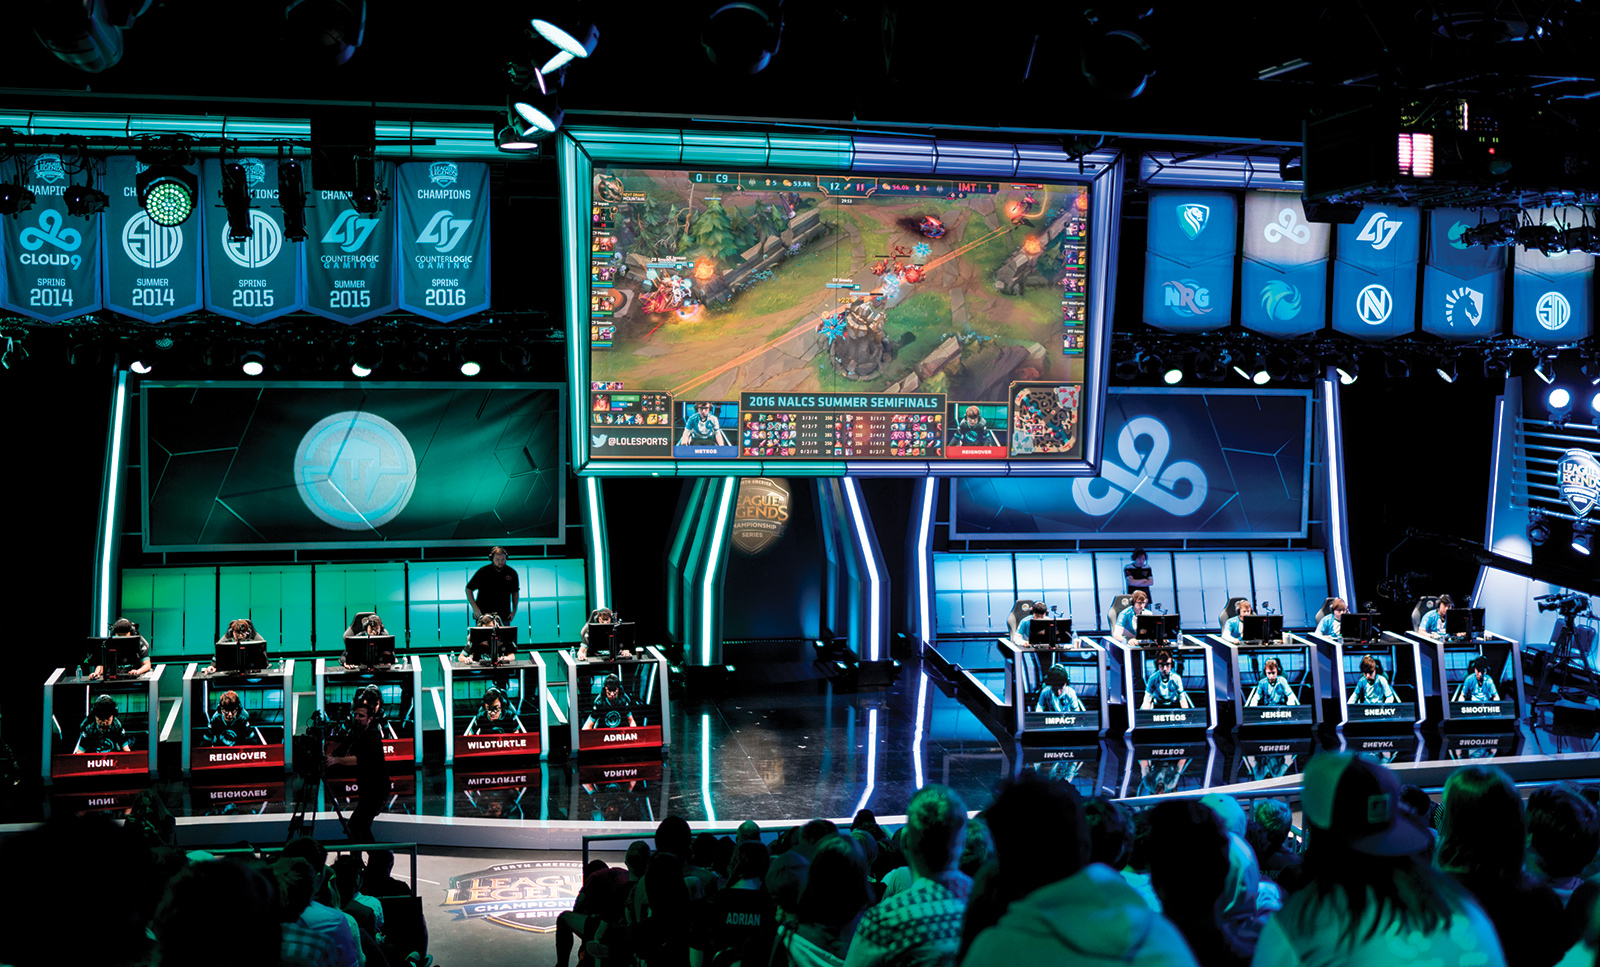 Cloud9 takes on Immortals in the 2016 Summer Semifinals of the North American League of Legends Championship Series (NA LCS) Summer Split at the NA LCS Studio in Los Angeles, California.